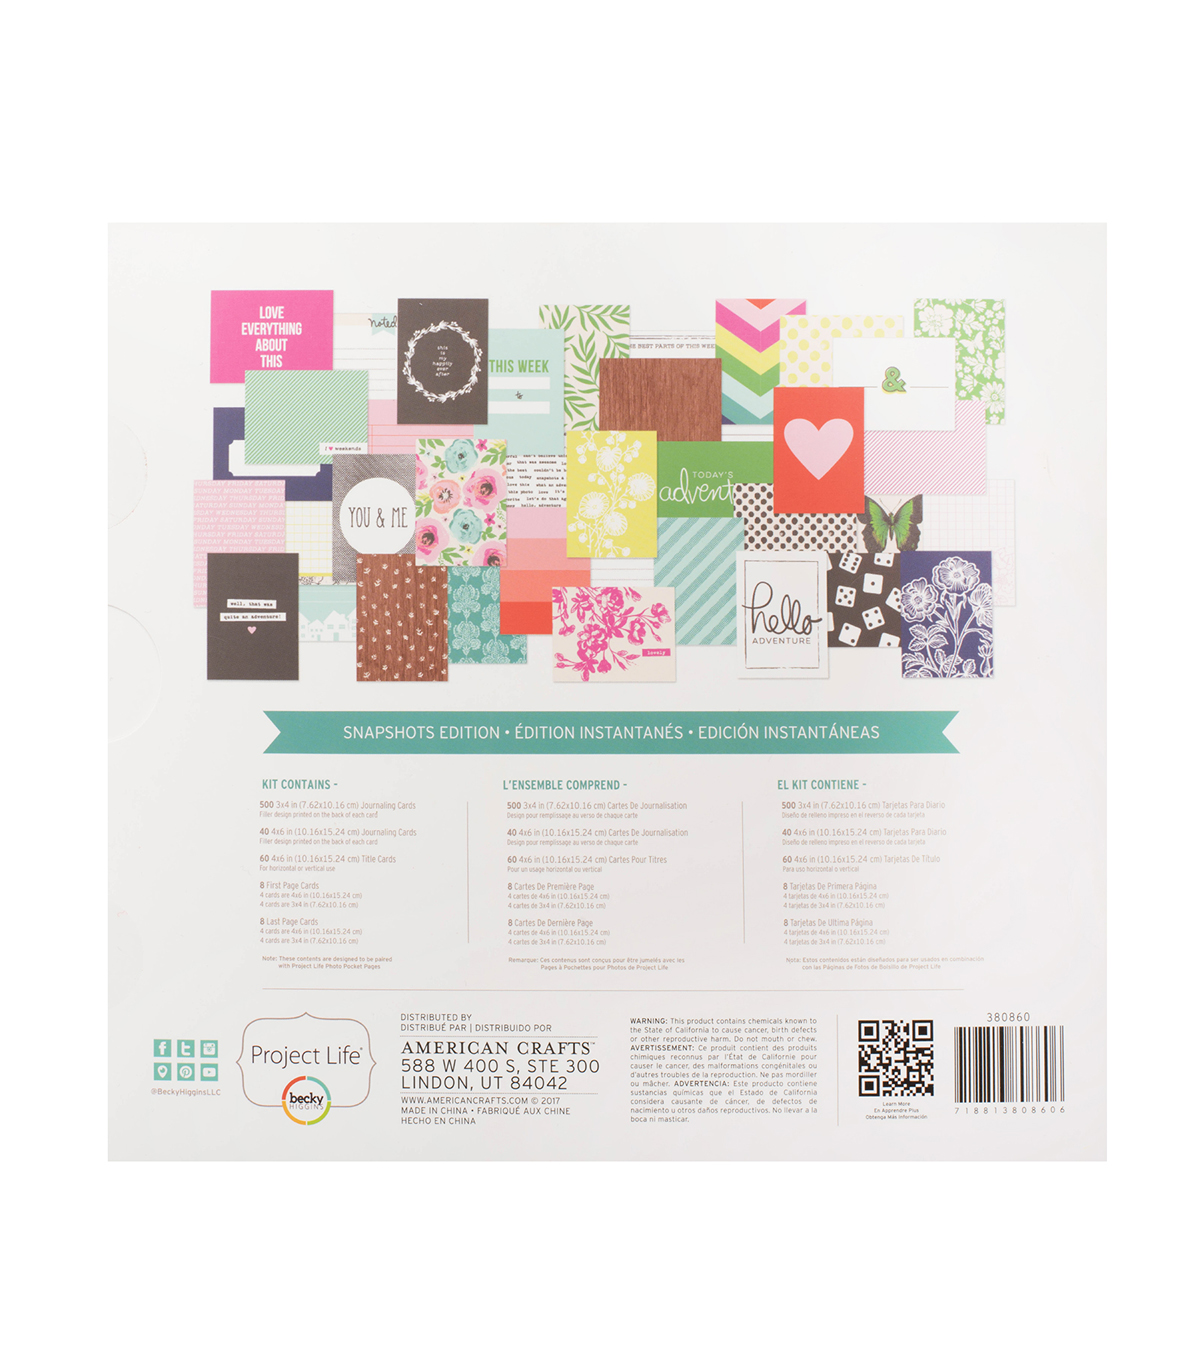 Project Life Snapshots Edition Nicole Seitter 616 pk Core Kit